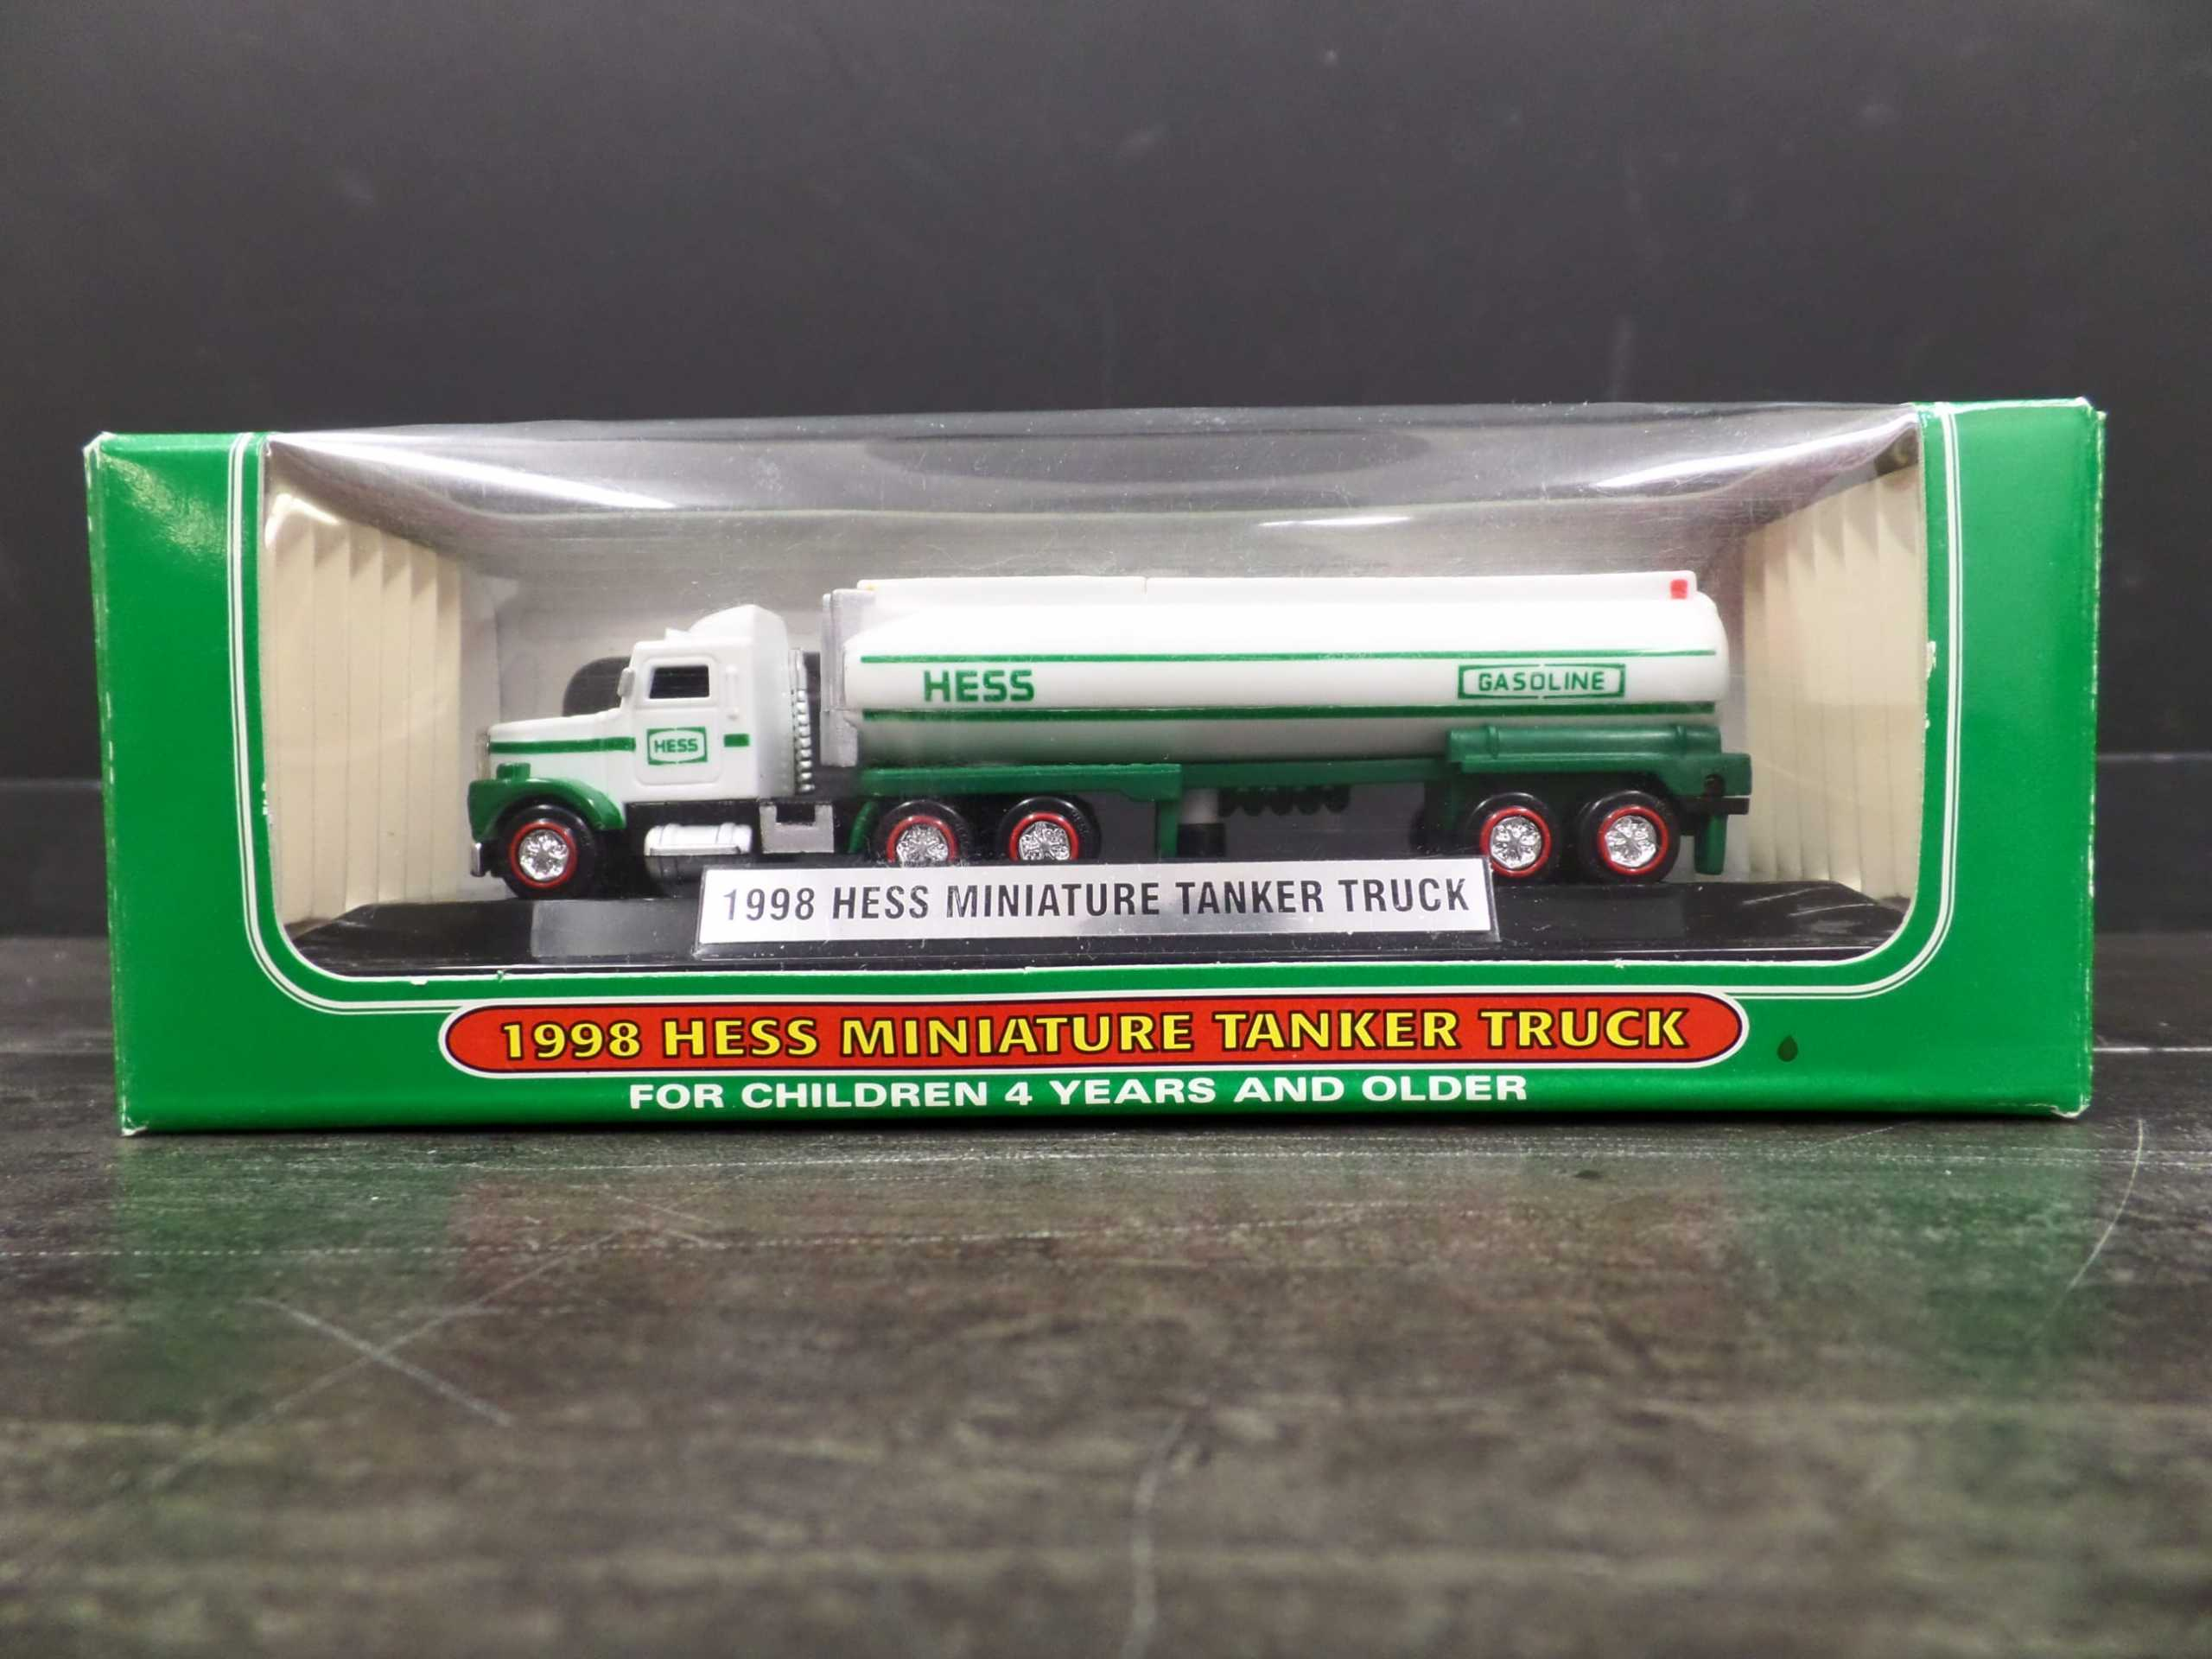 1998 MINI HESS TANKER TRUCK  Donated by: WPBS SUPPORTER  Valued at: $74